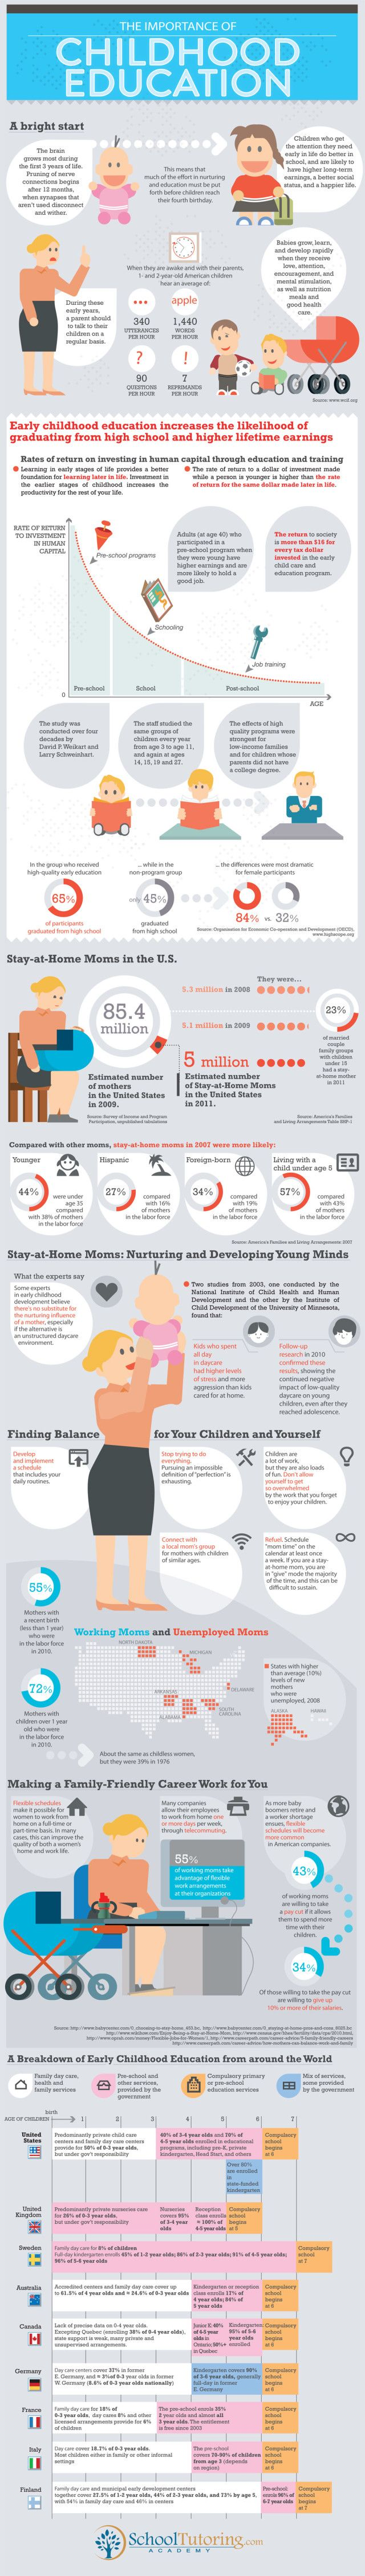 The importance of childhood education - an infographic.